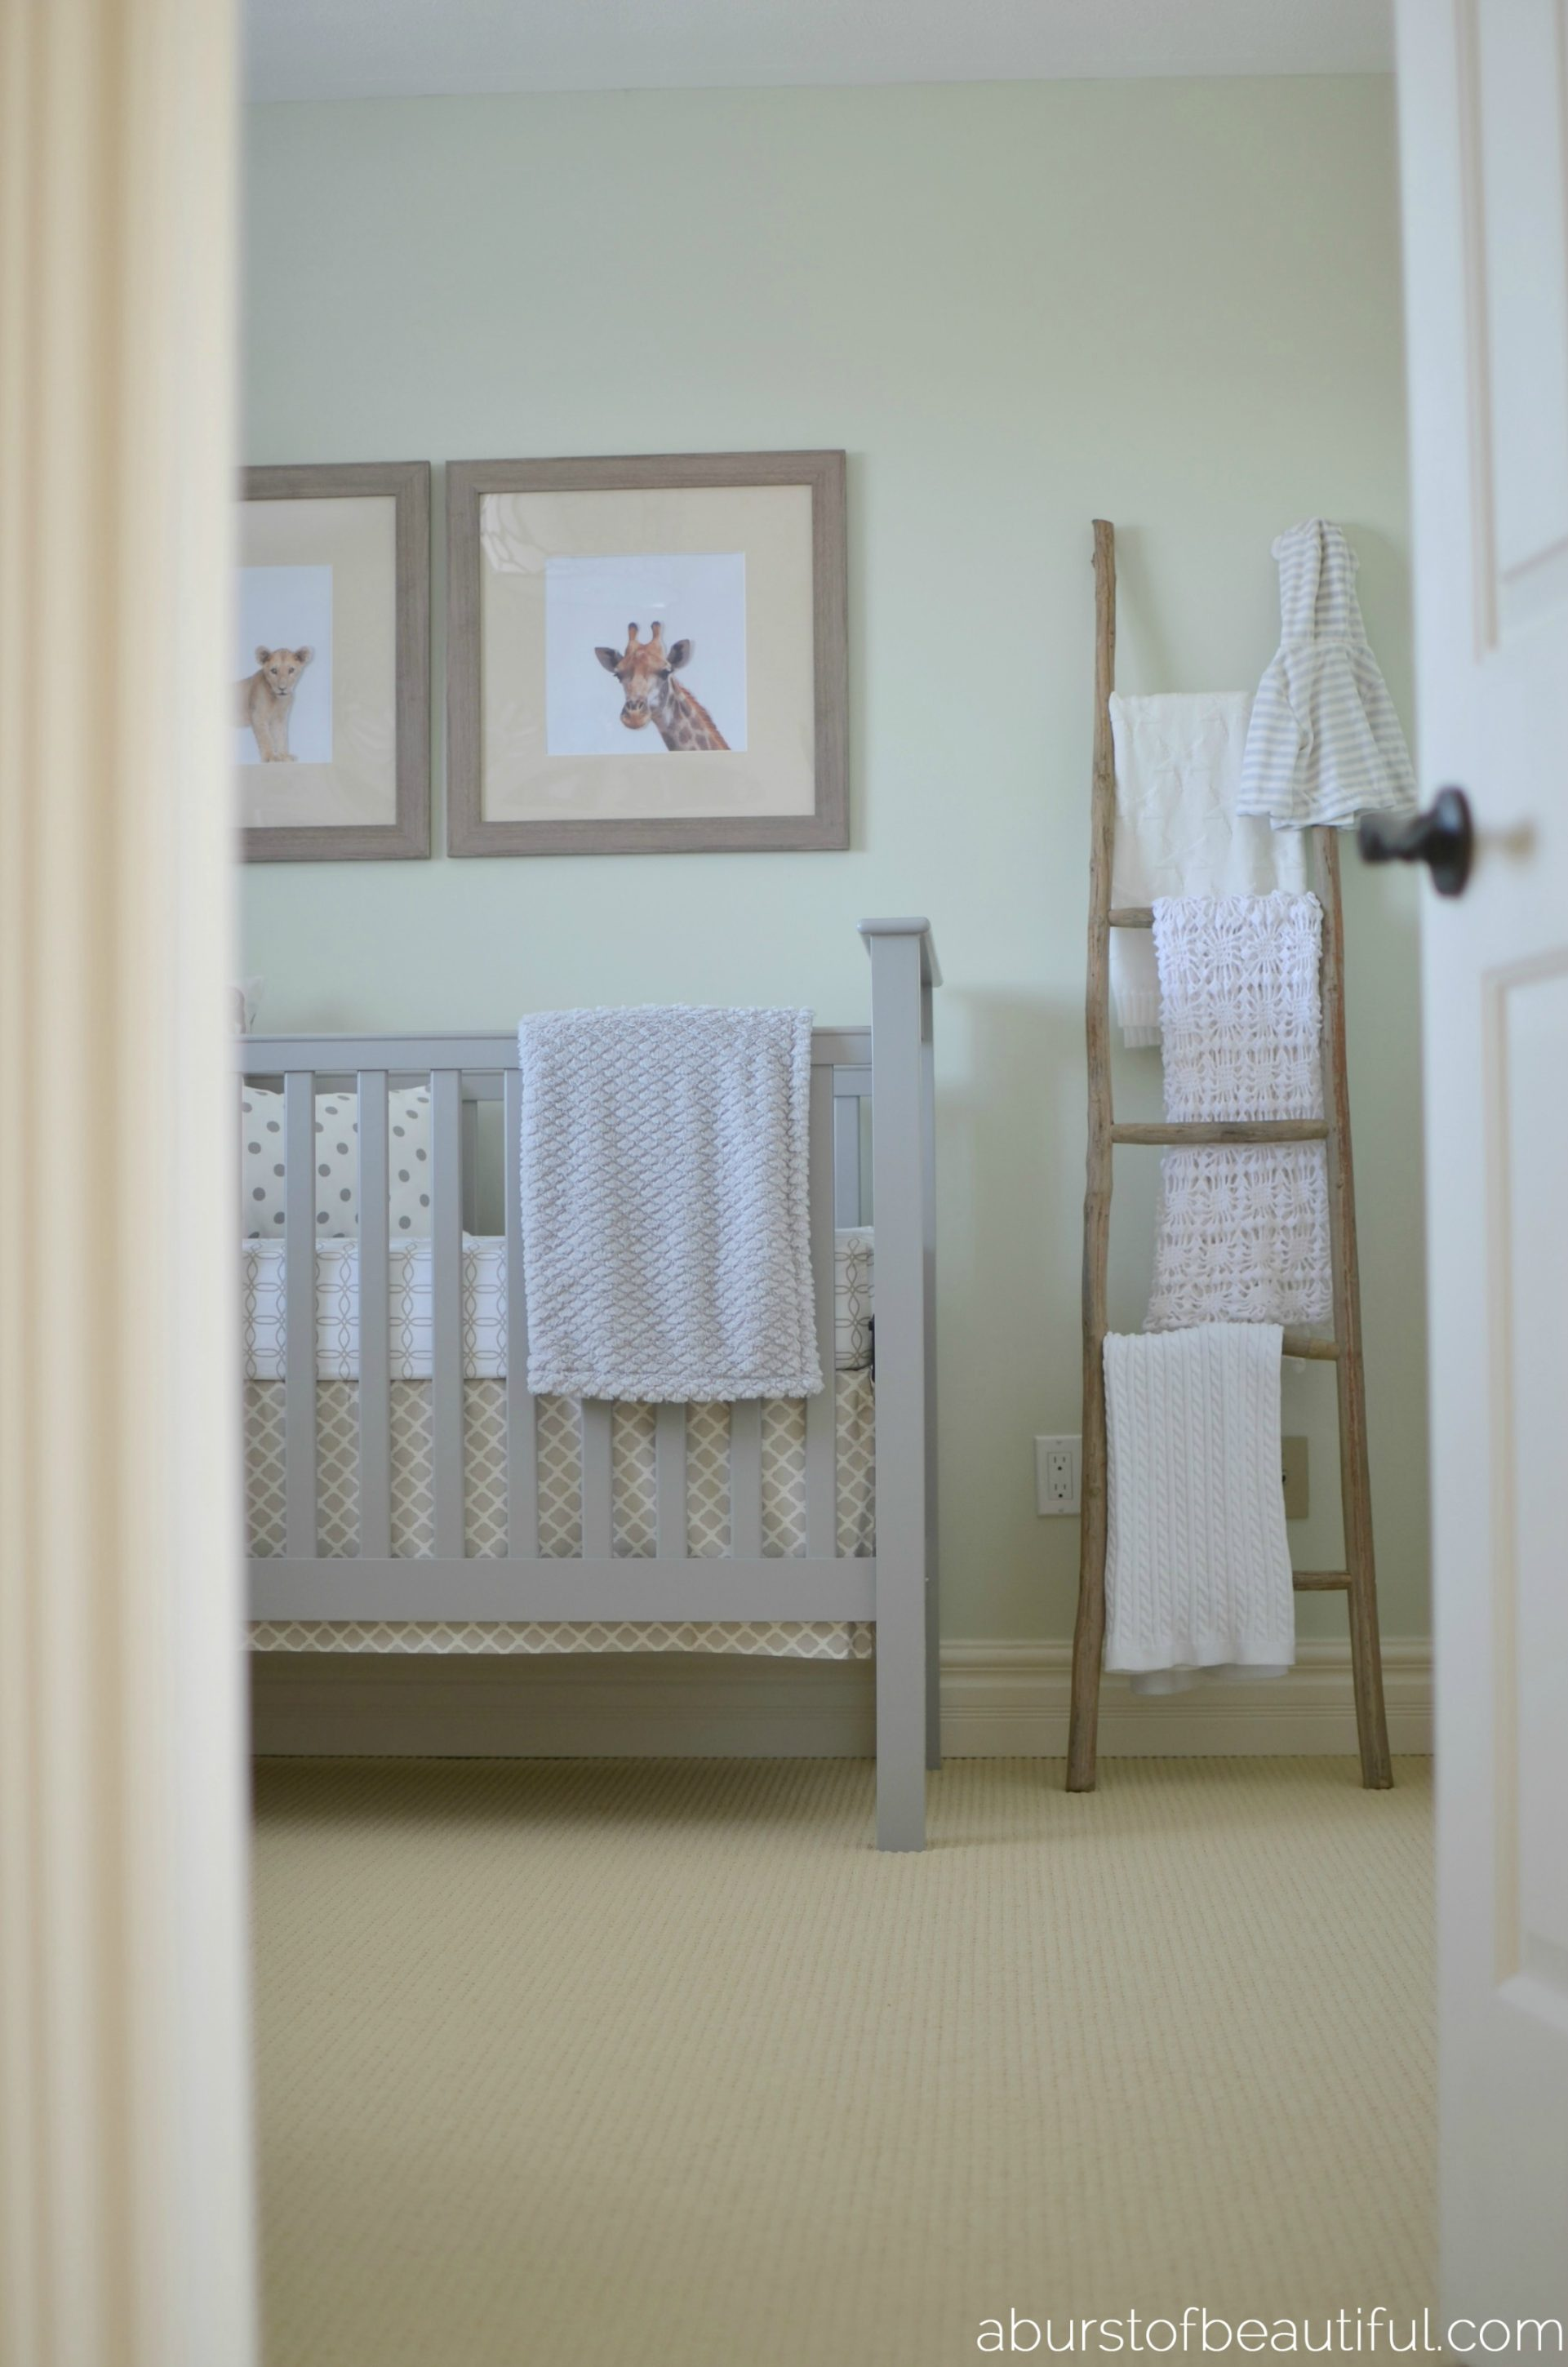 A Burst of Beautiful - Gender Neutral Safari Nursery